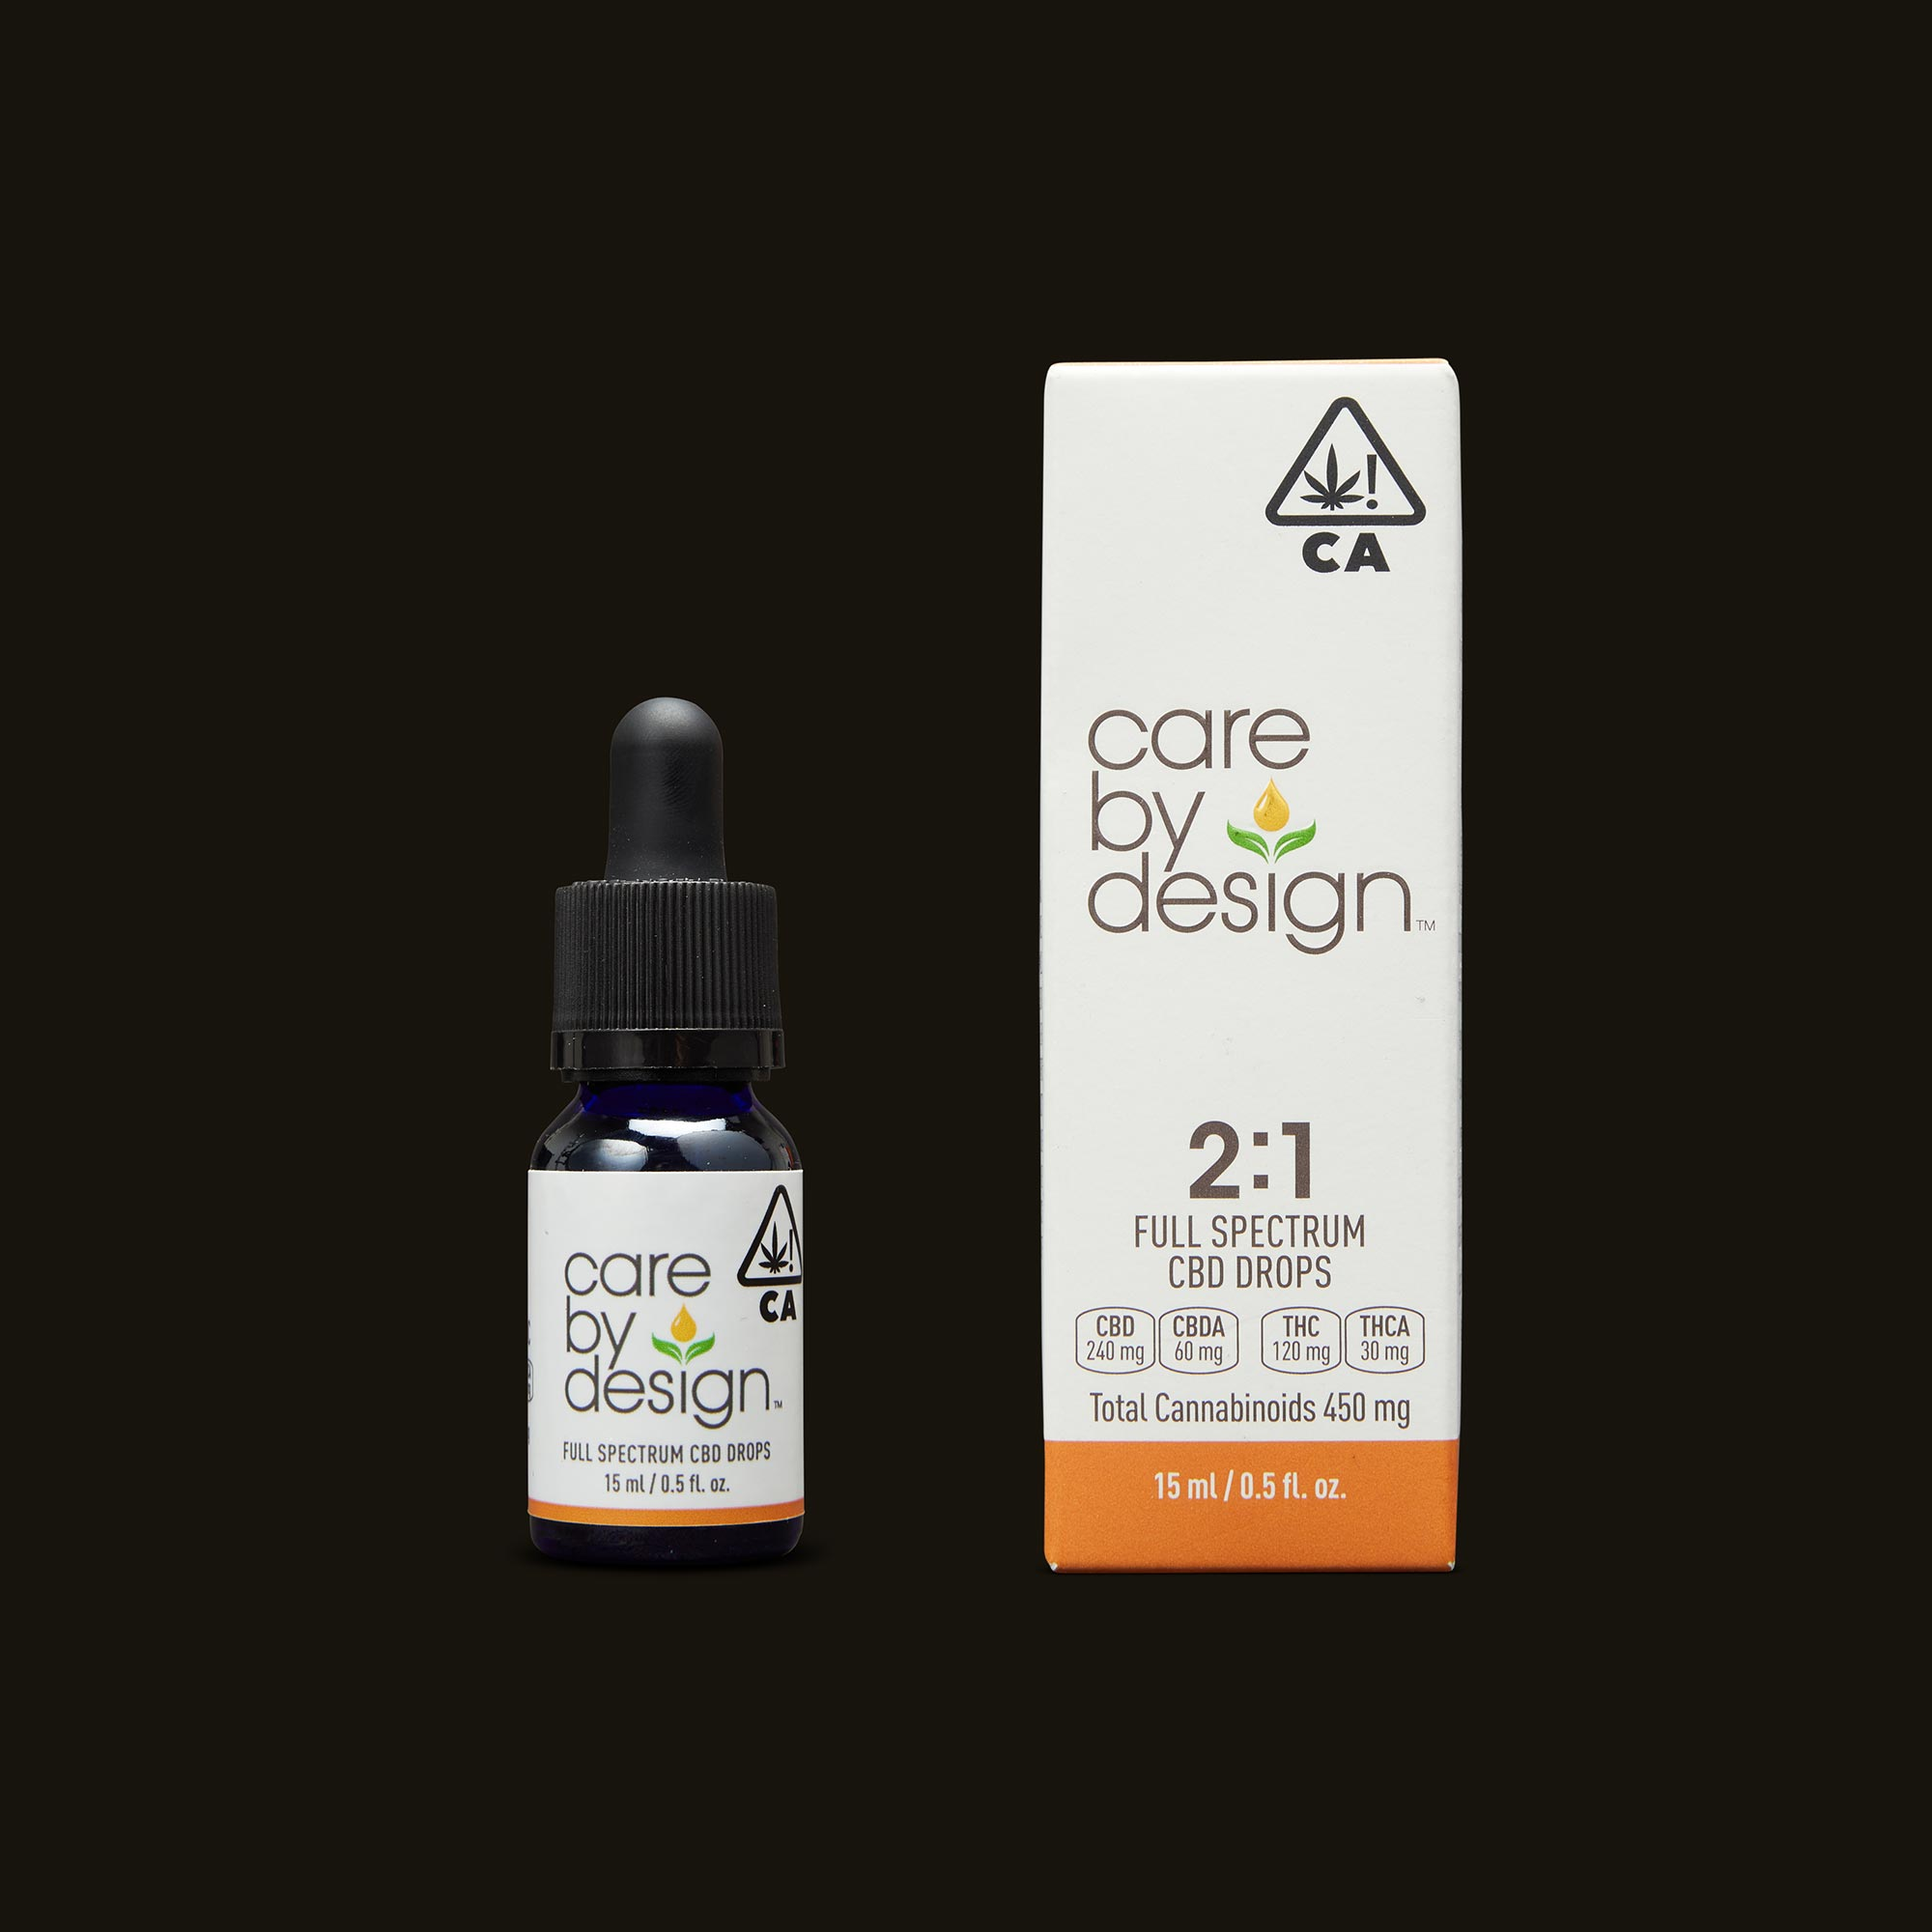 Care By Design 2:1 Full Spectrum CBD Drops - 0.5oz Tincture and Packaging